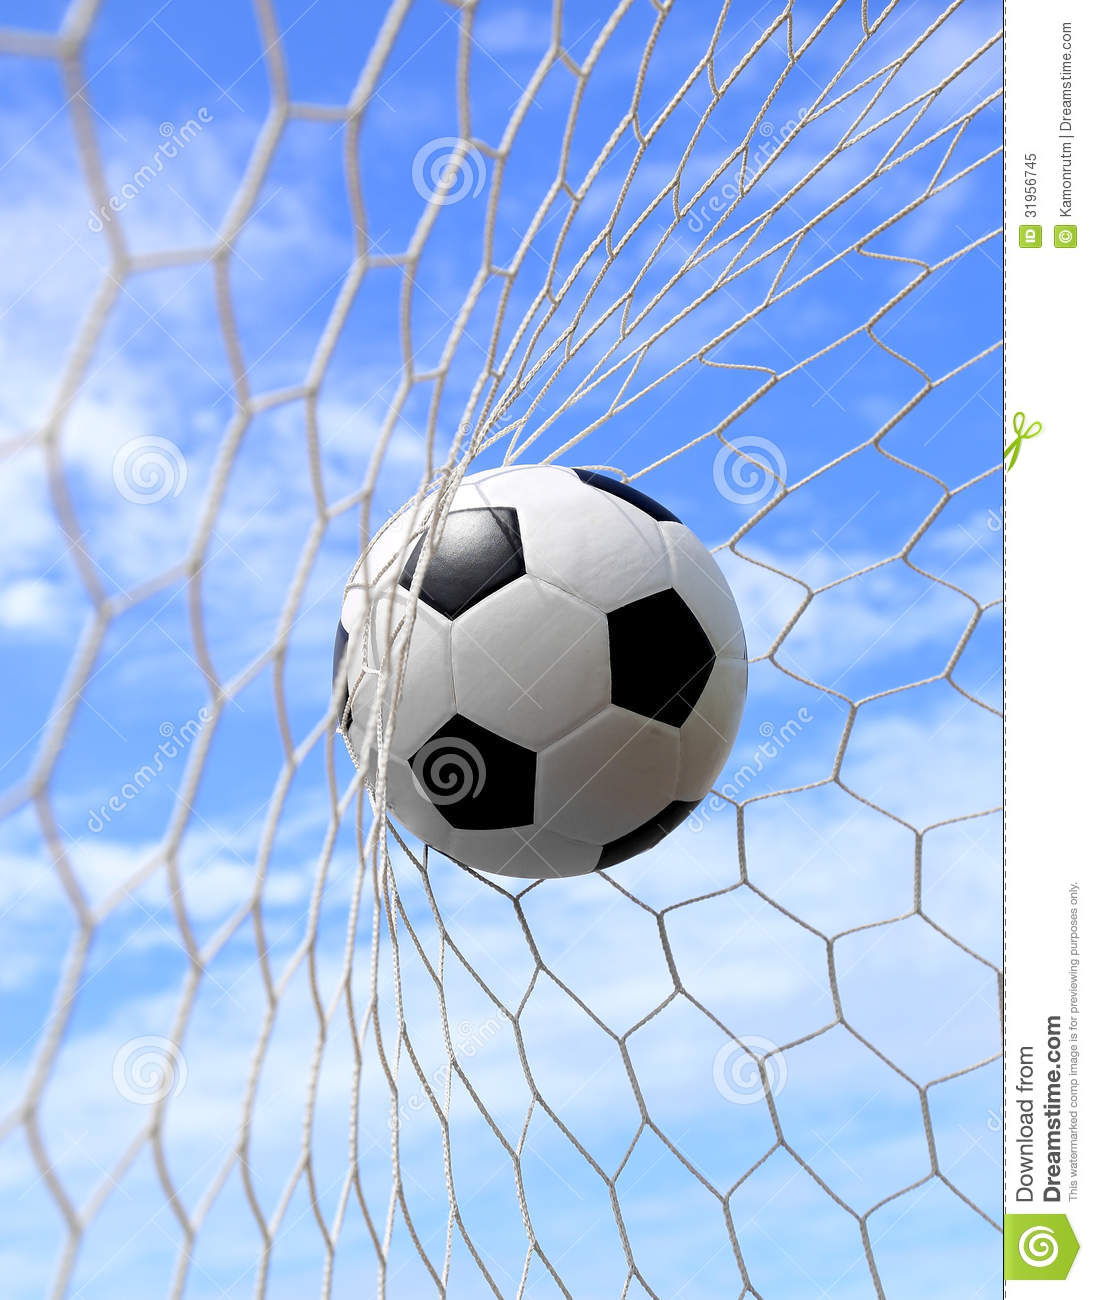 Soccer Ball In Net Royalty Free Stock Photo - Image: 31956745